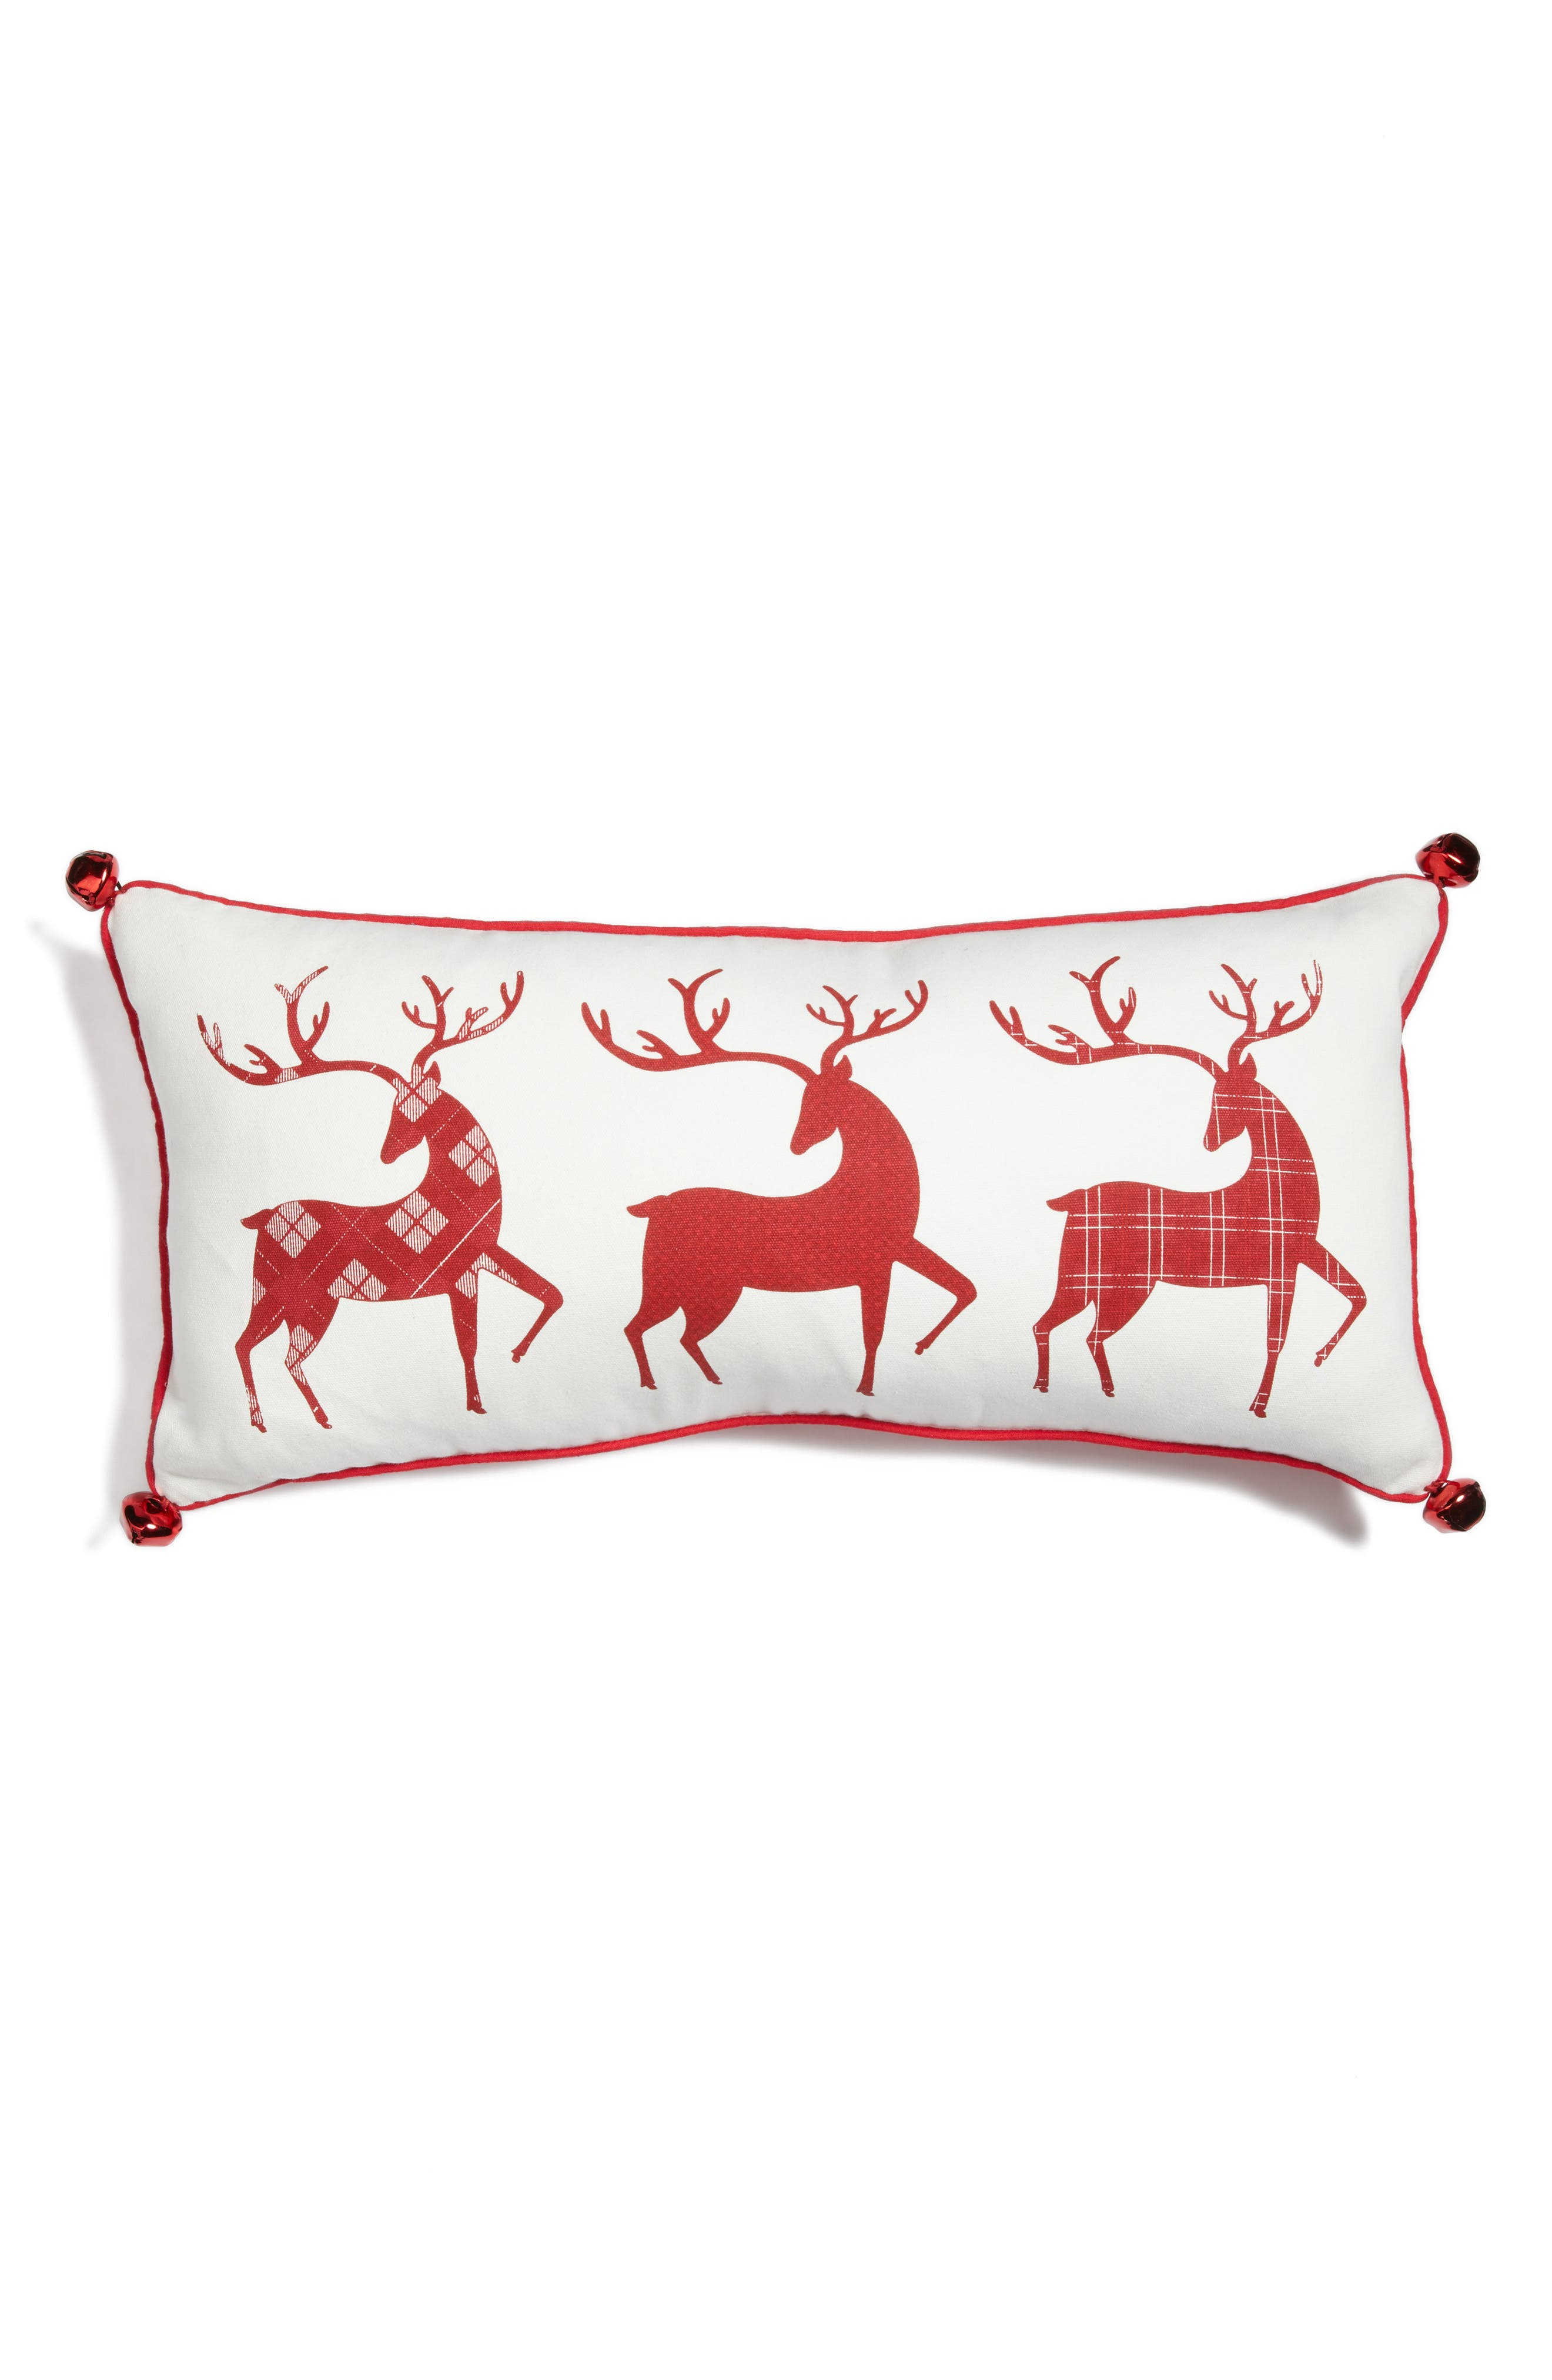 Three Reindeer Accent Pillow,                         Main,                         color, White